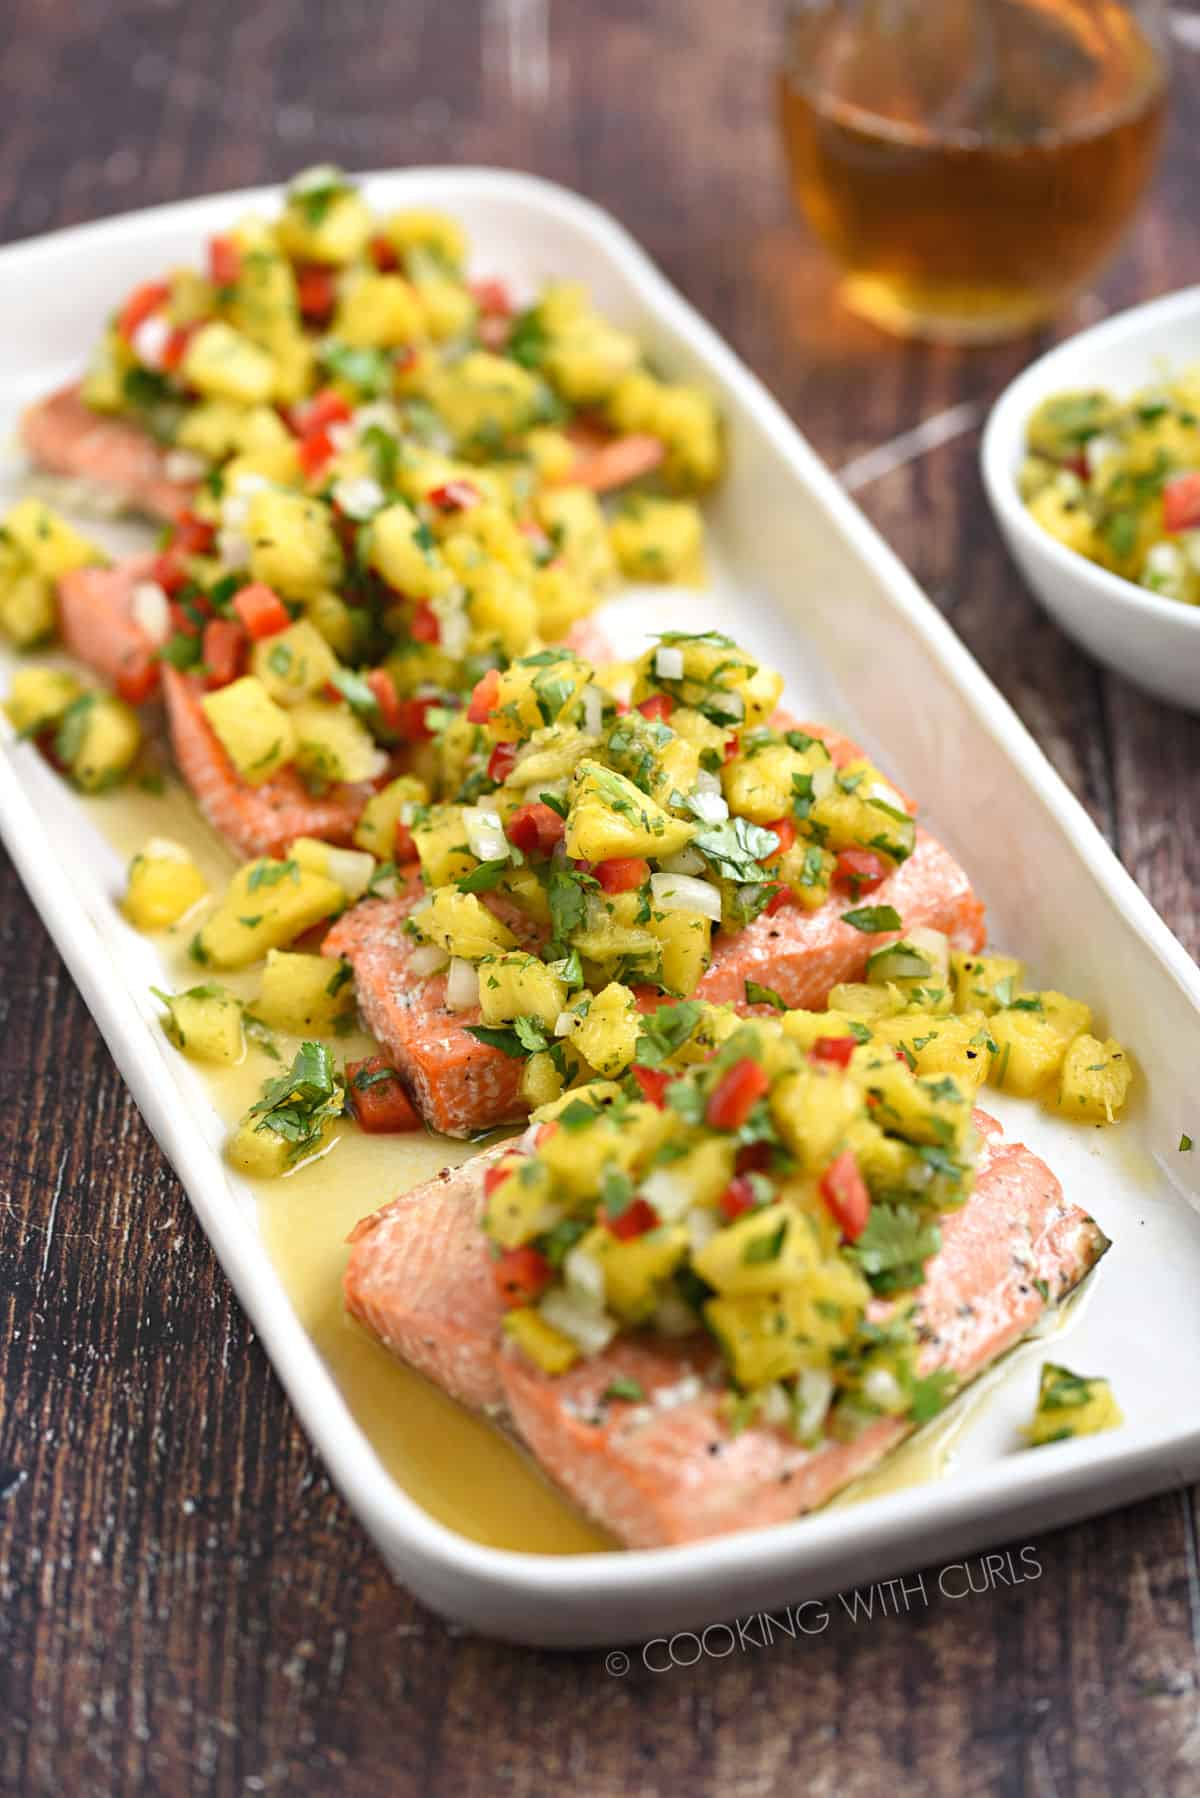 Four salmon filets topped with pineapple salsa on a white platter witha  glass of wine and bowl of salsa in the background.